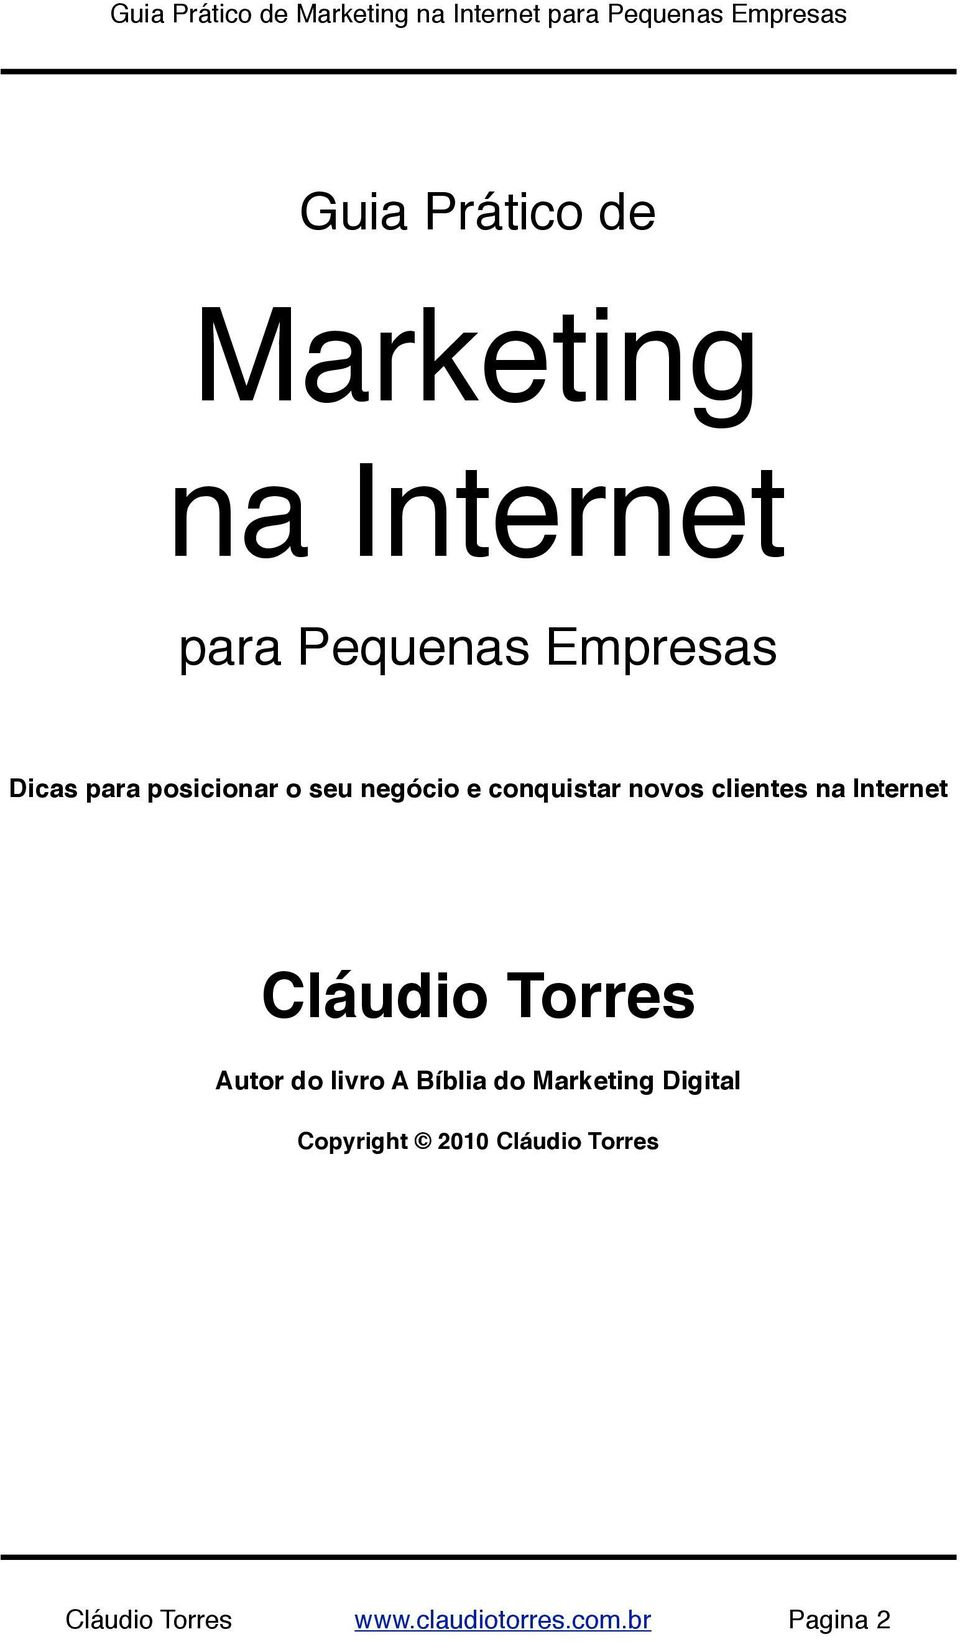 Internet Cláudio Torres Autor do livro A Bíblia do Marketing Digital